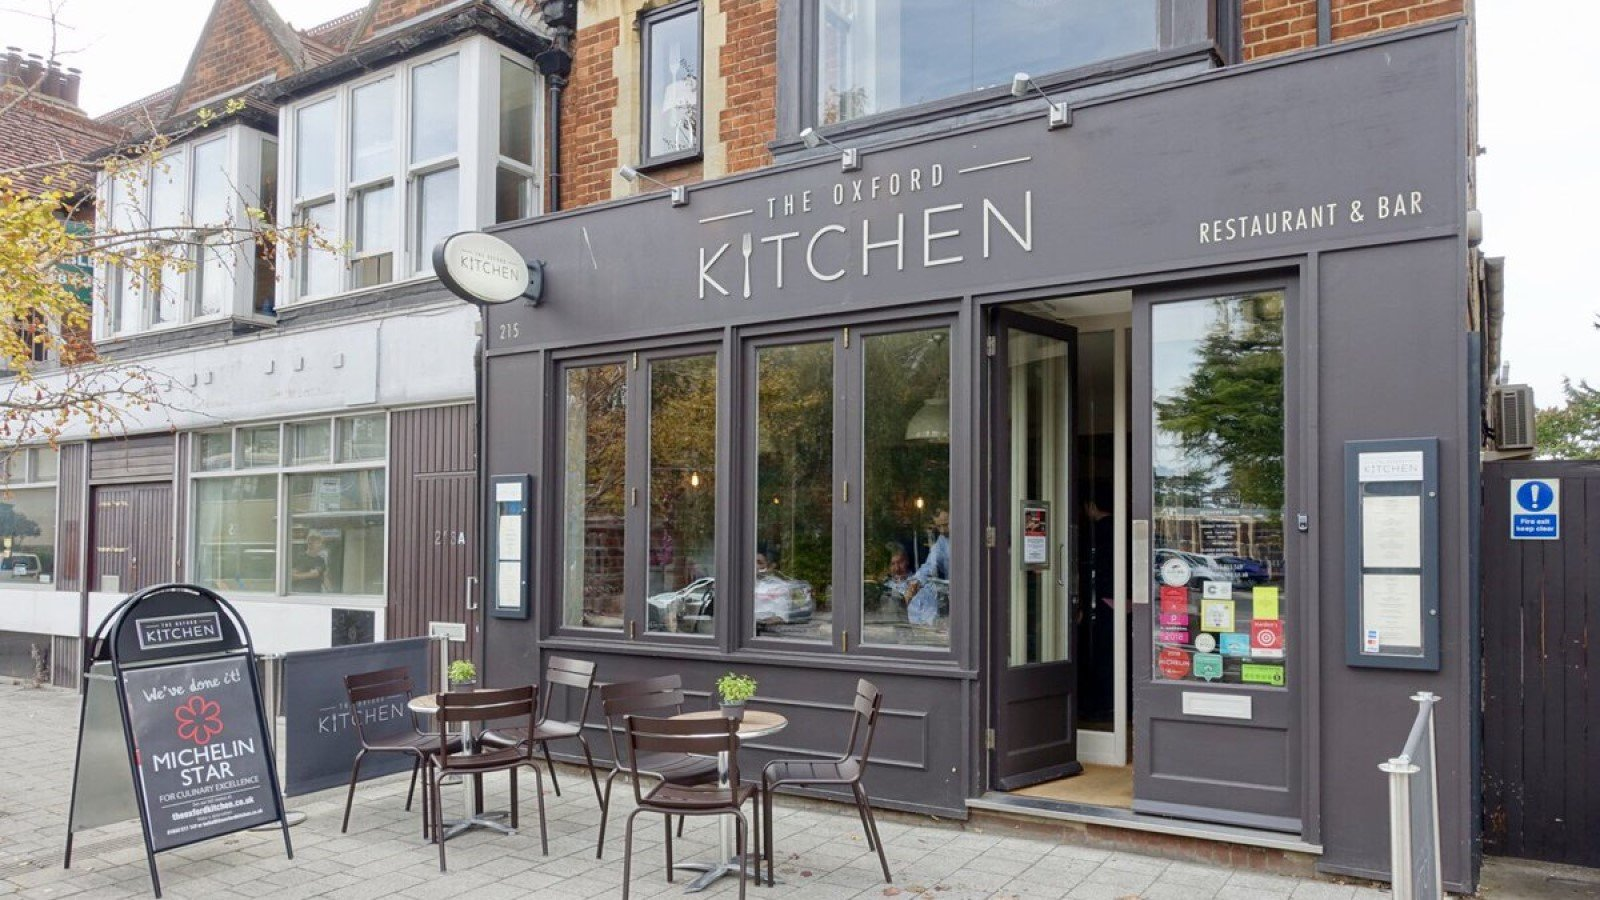 The Oxford Kitchen Restaurant in Summertown, Oxford